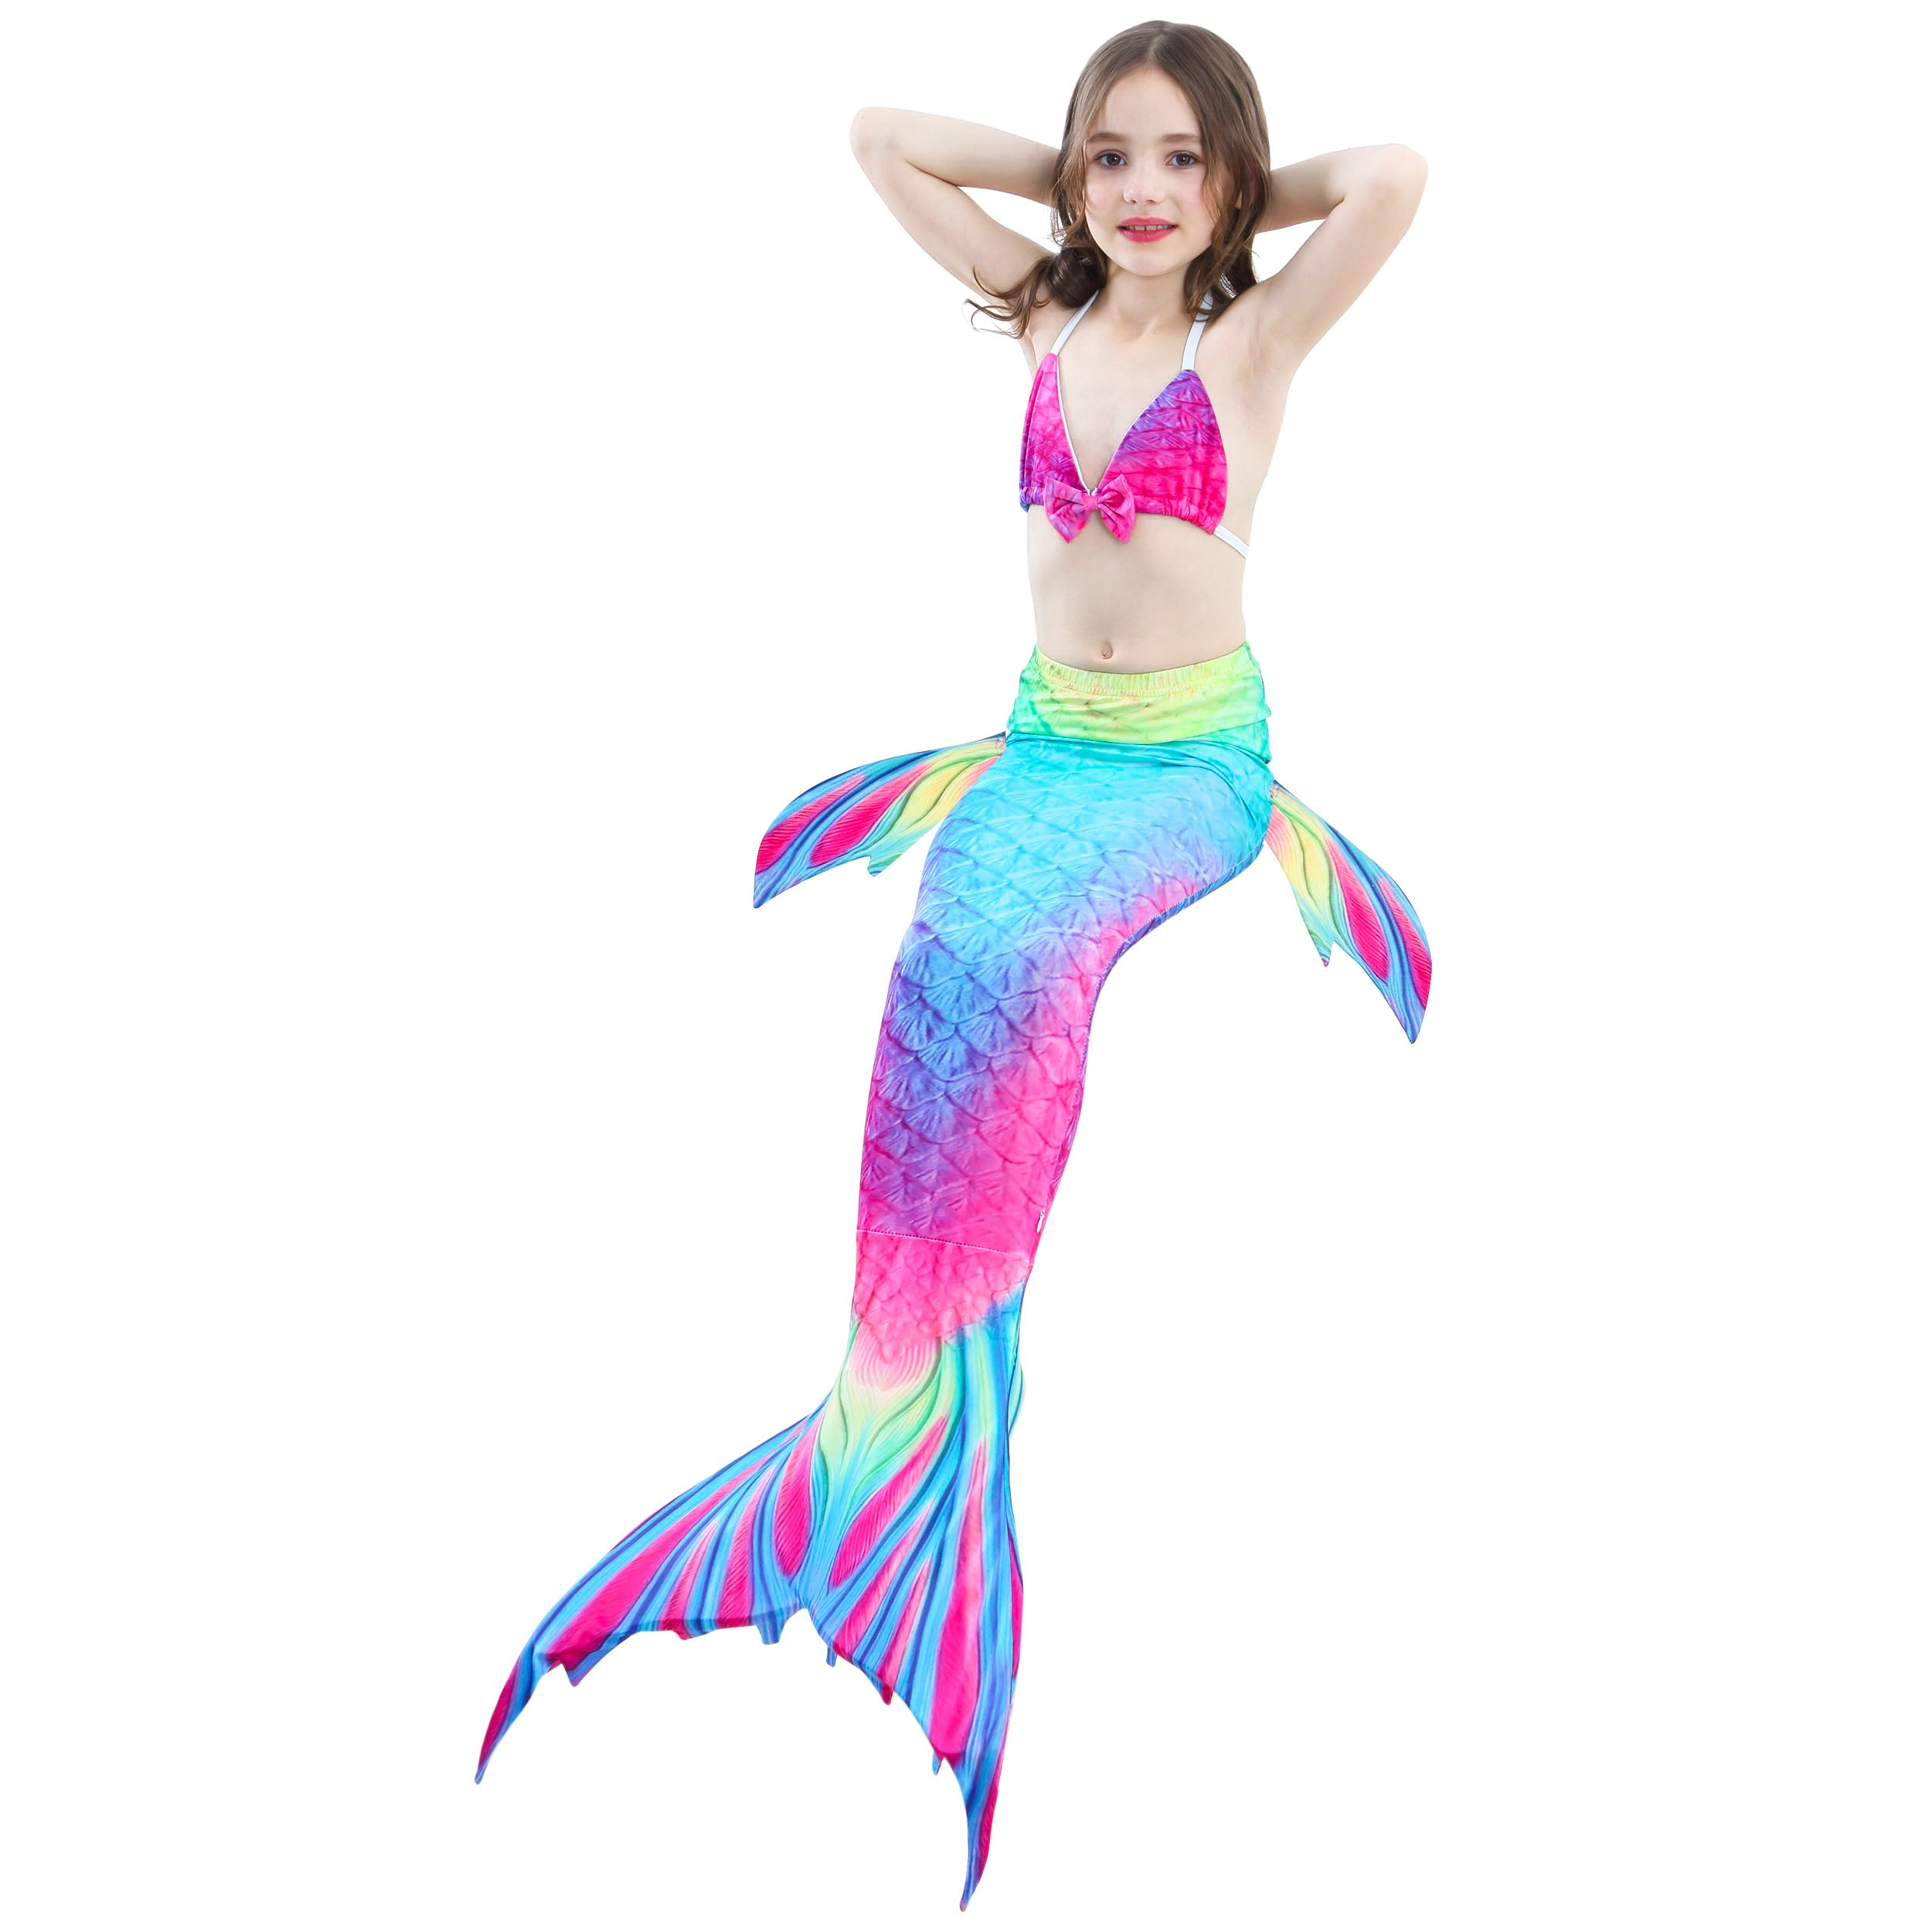 Camlinbo 3PCS Girls' Swimsuit Mermaid Tail for Swimming Tropical Bikini Set Support Monofin by Camlinbo (Image #6)